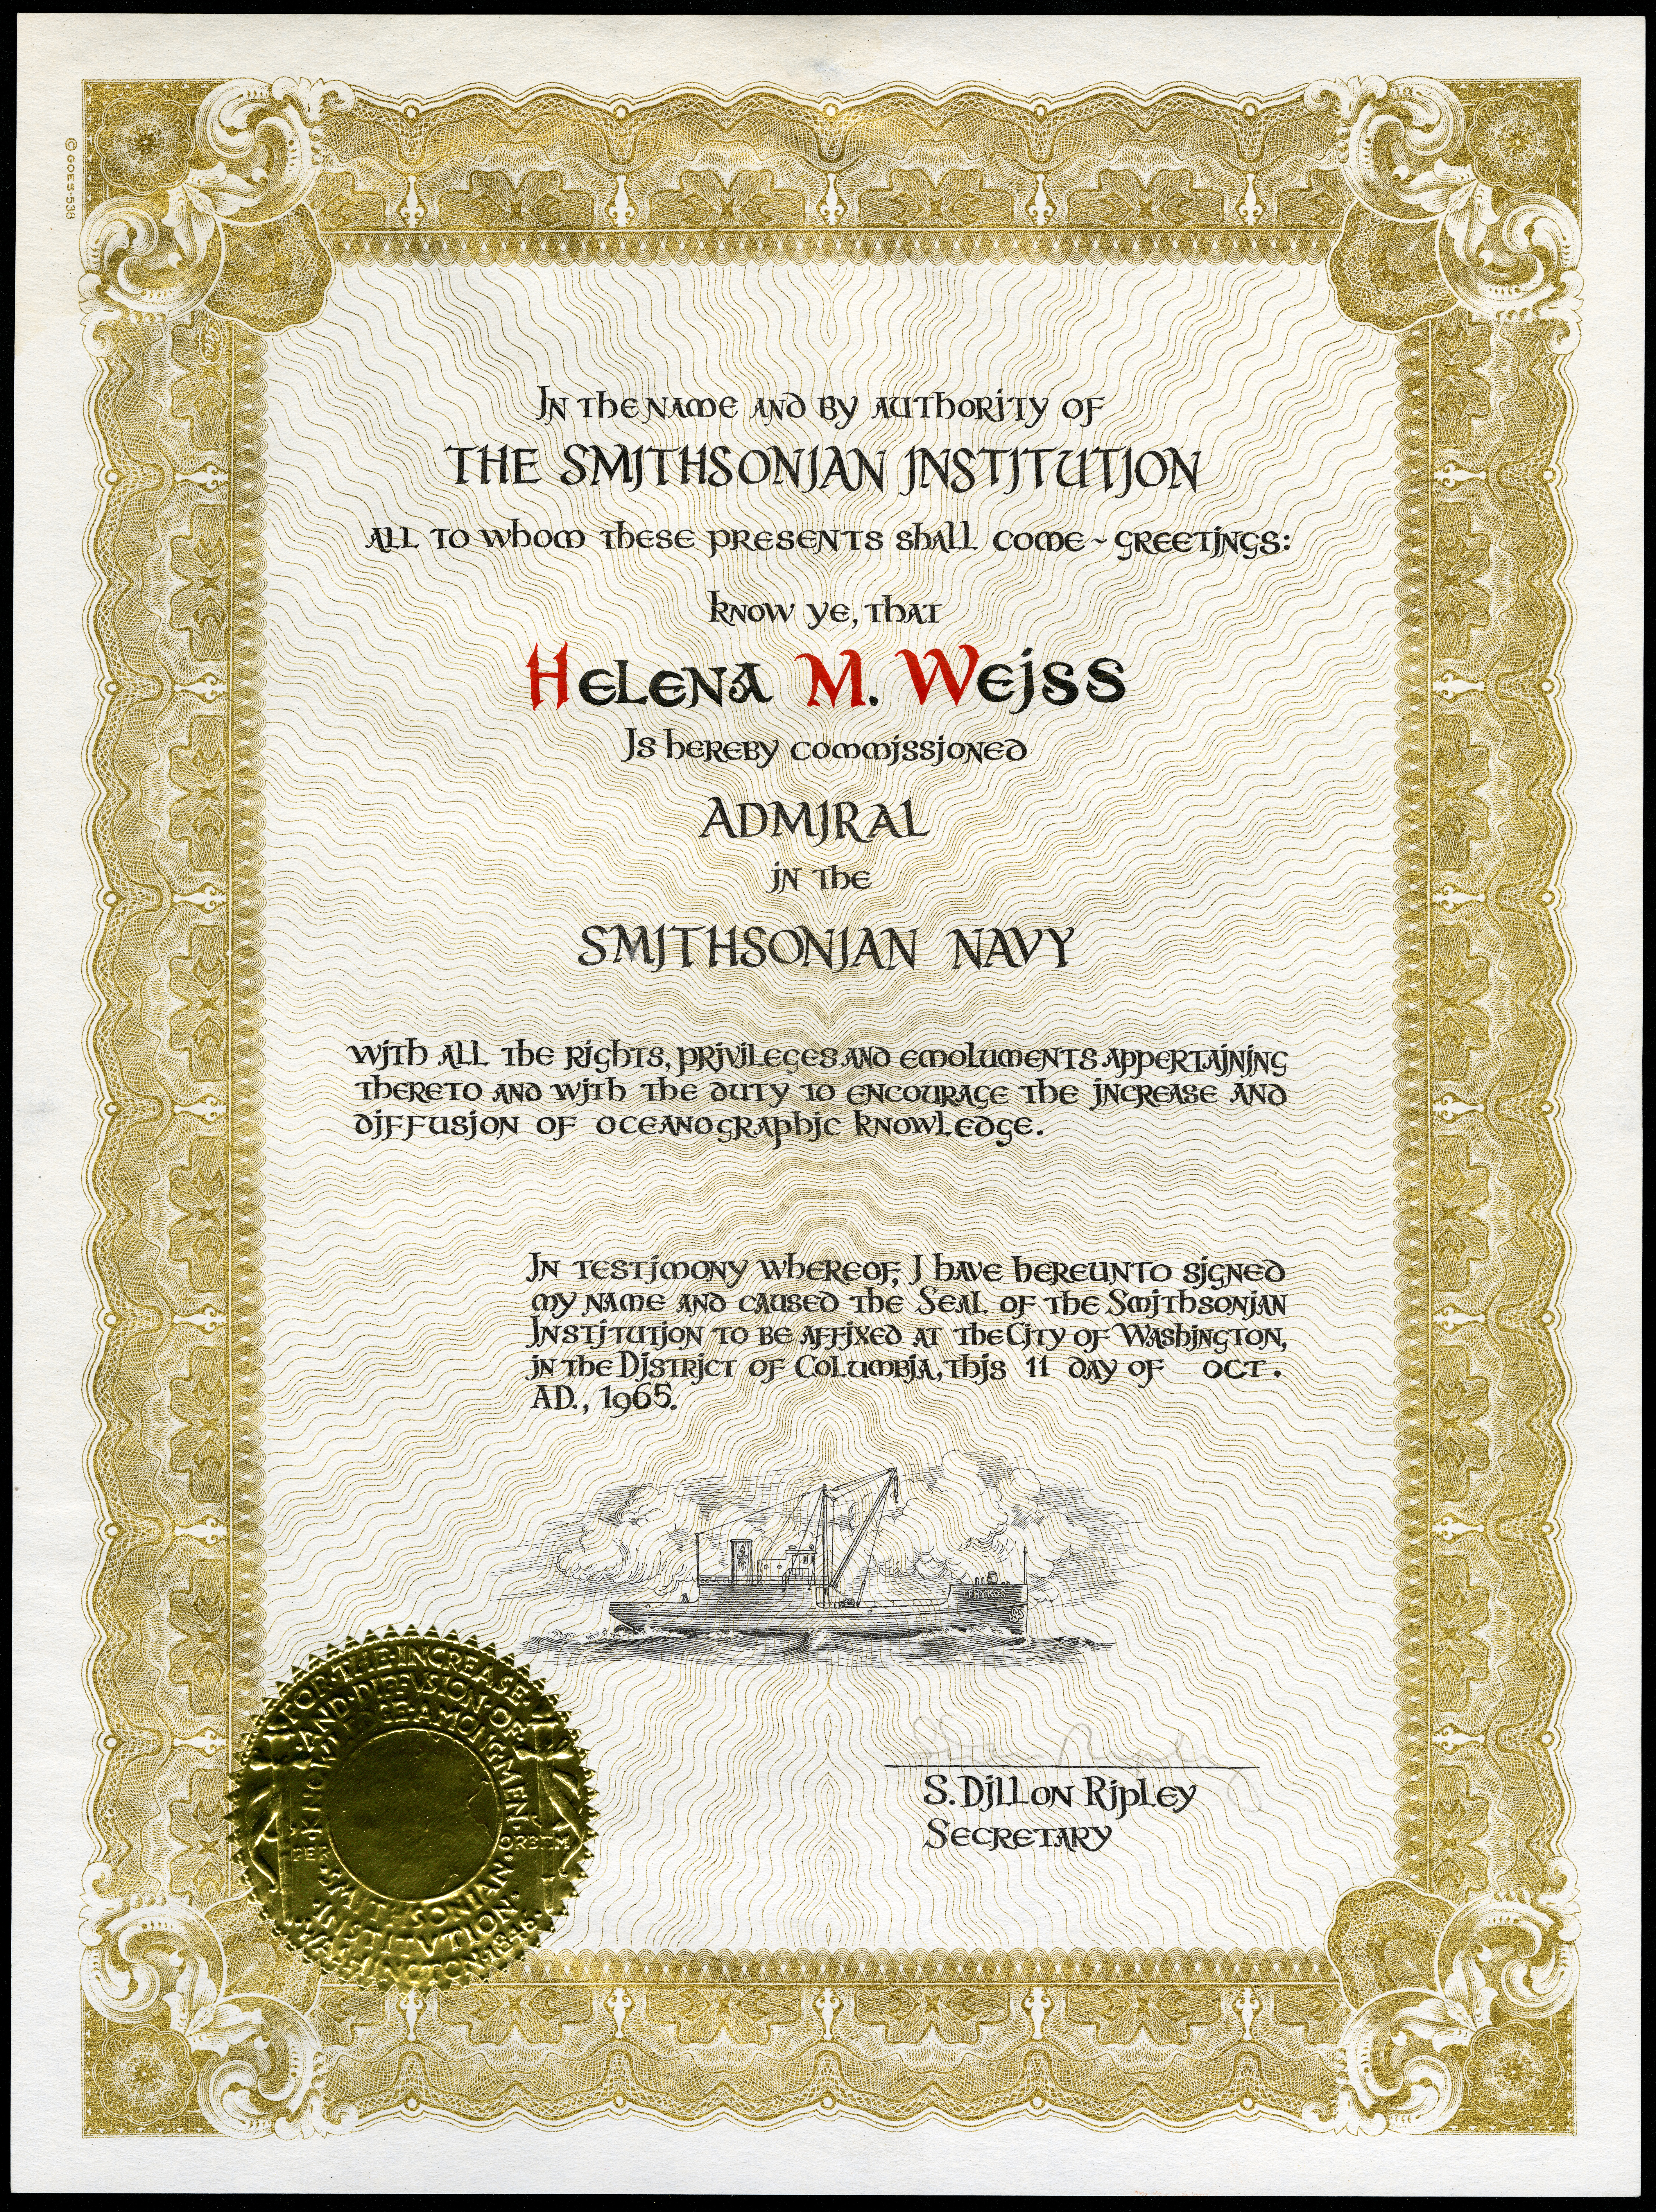 Certificate from S. Dillon Ripley to Helena M. Weiss jokingly appointed her admiral of the Smithsoni